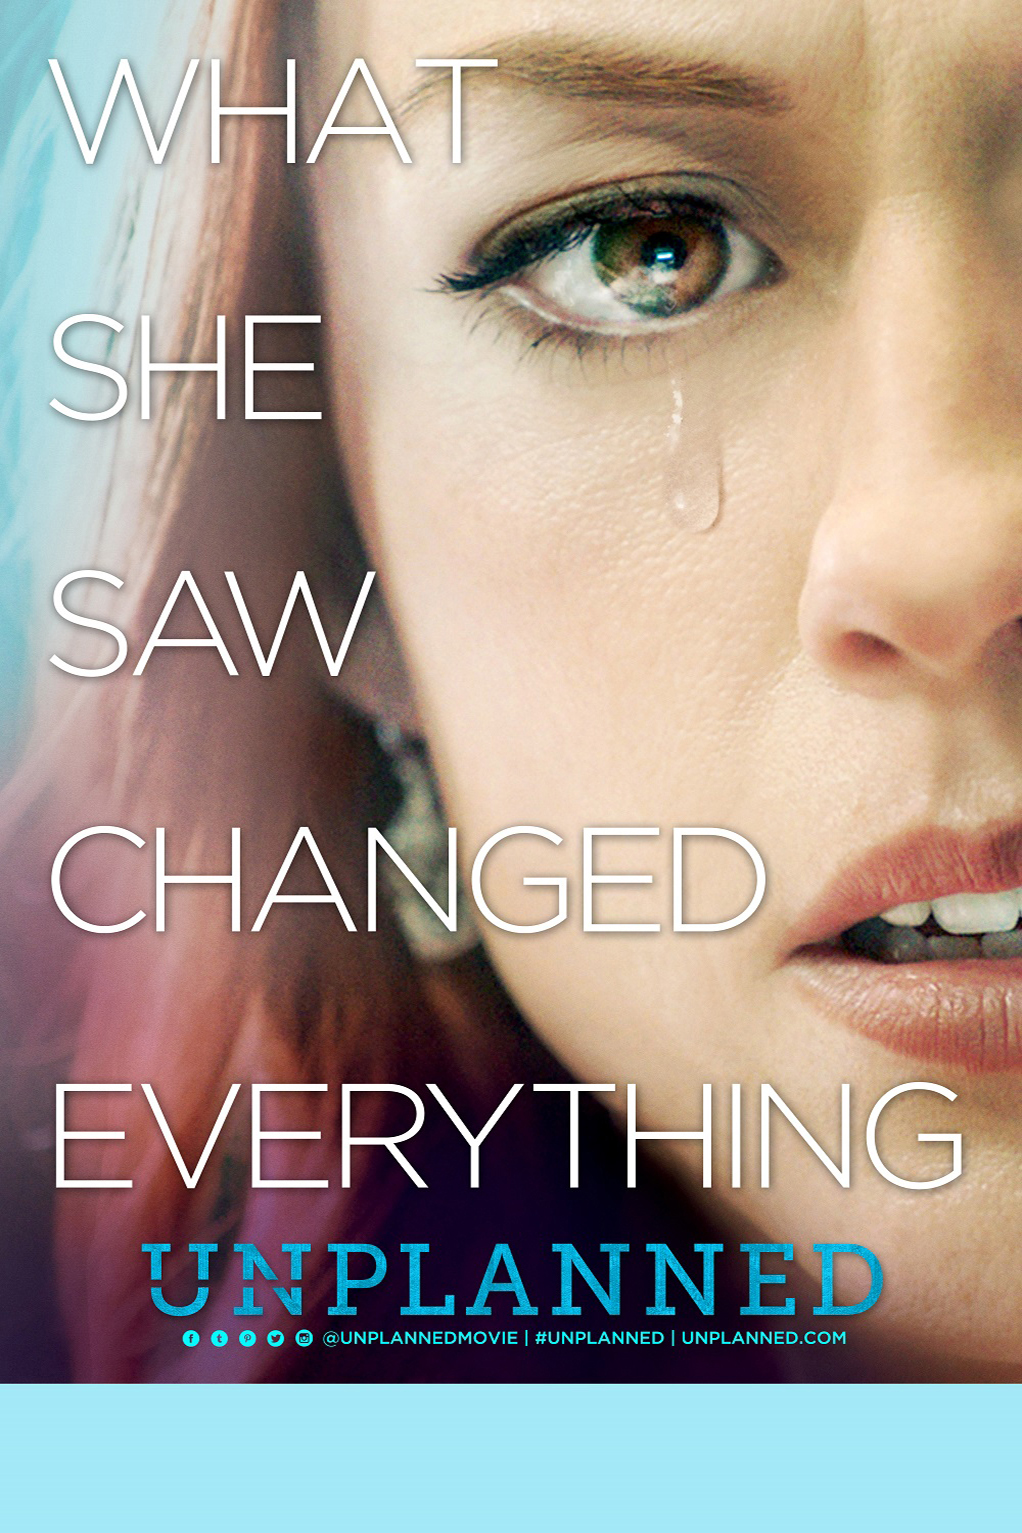 Poster for Unplanned